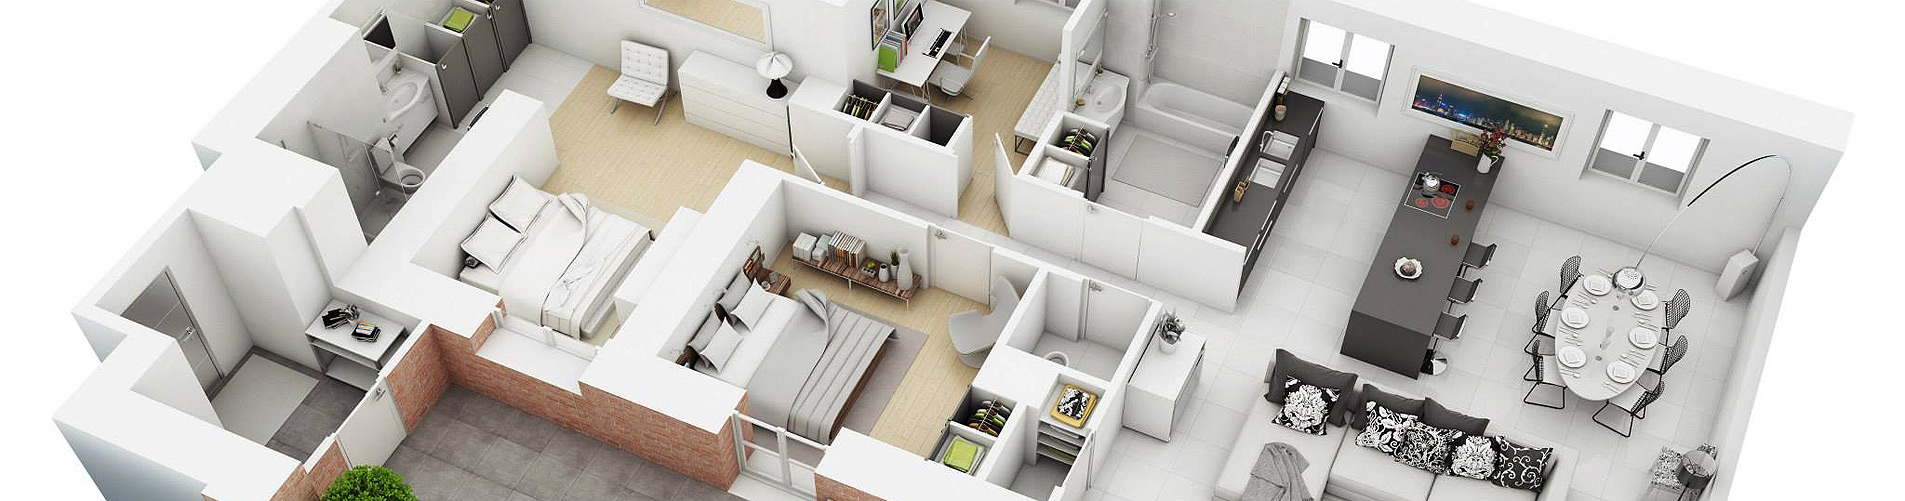 3D Floor Plan of Luxury House